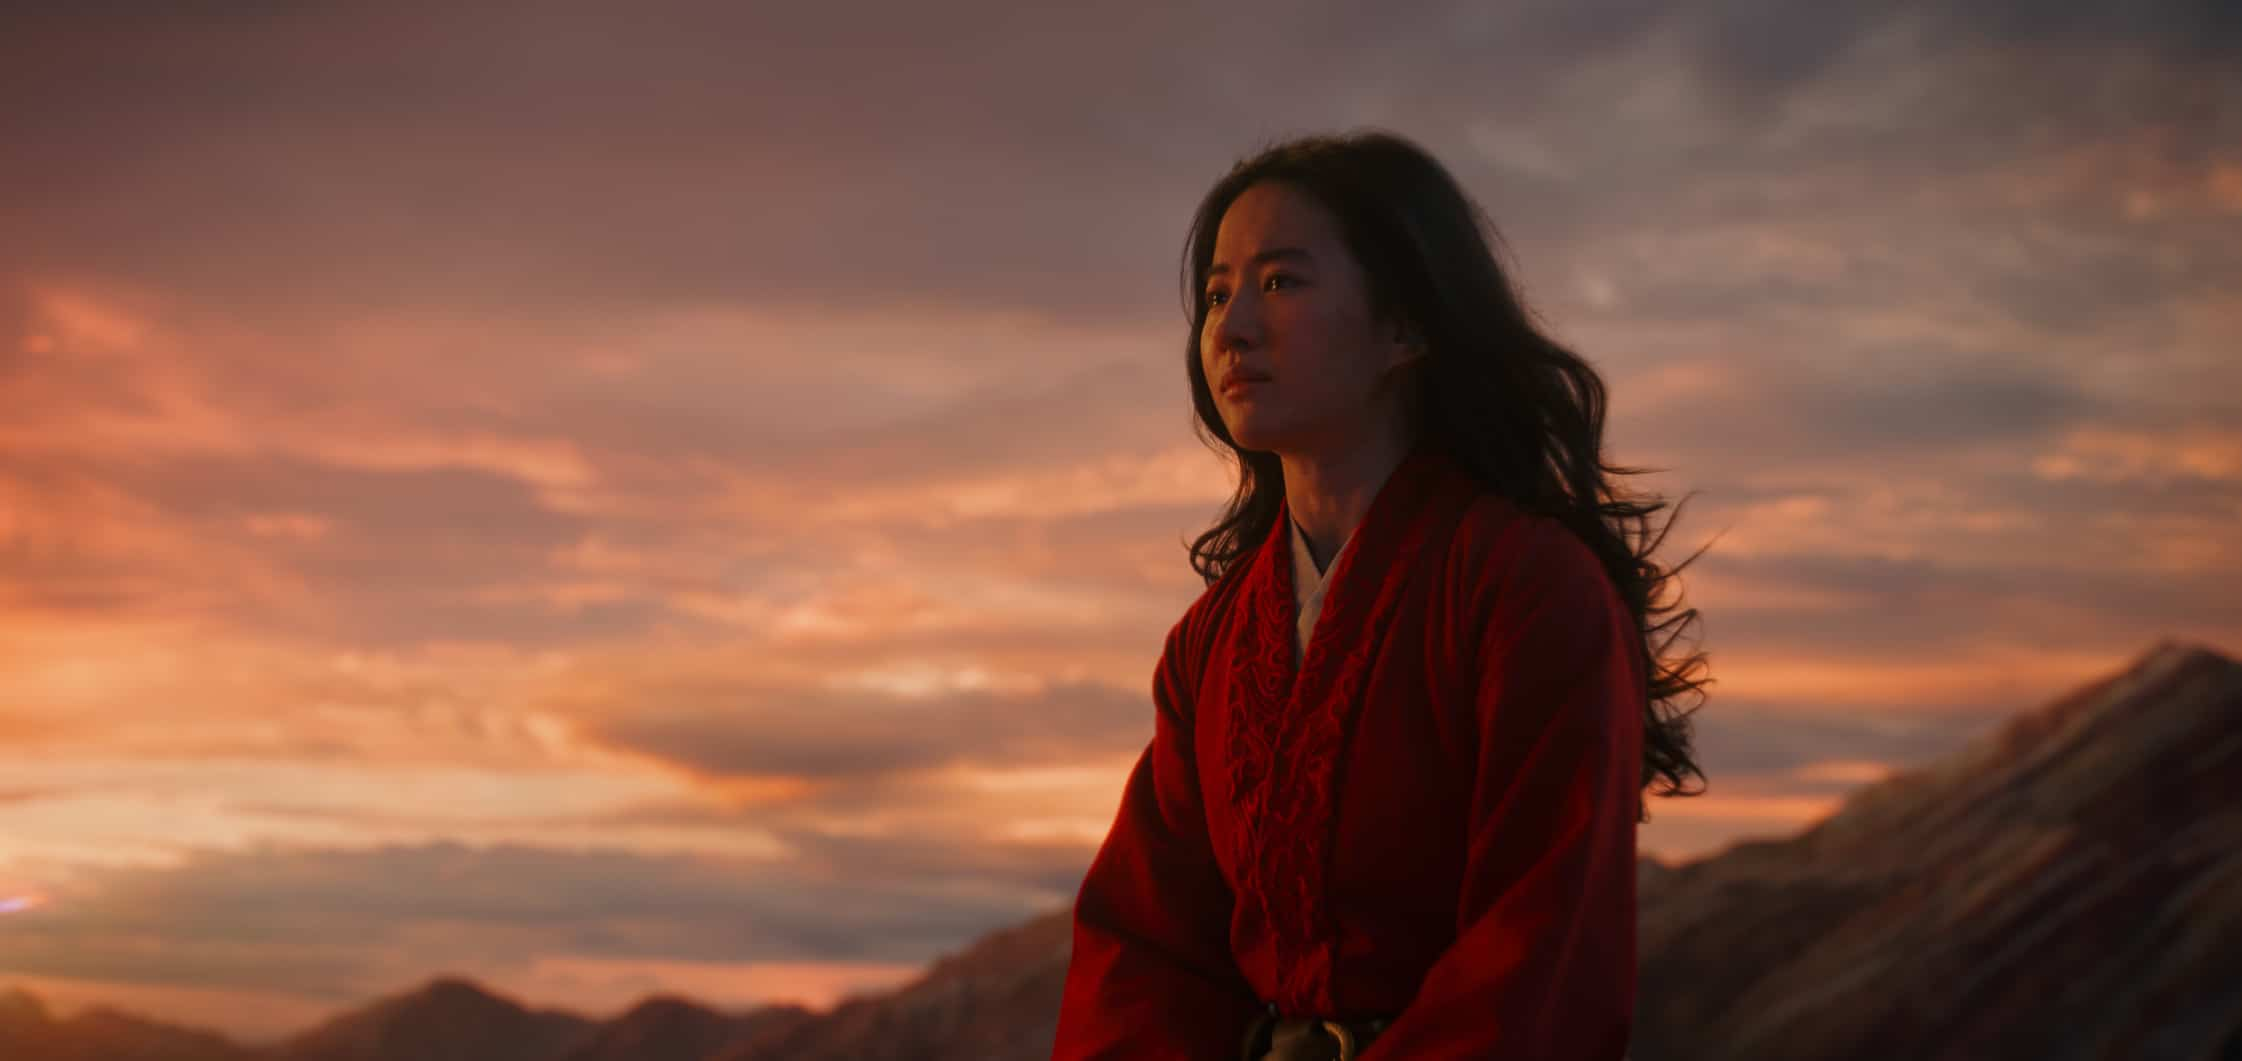 Review Mulan 2020 Is The Highest Budget Hallmark Movie Zannaland